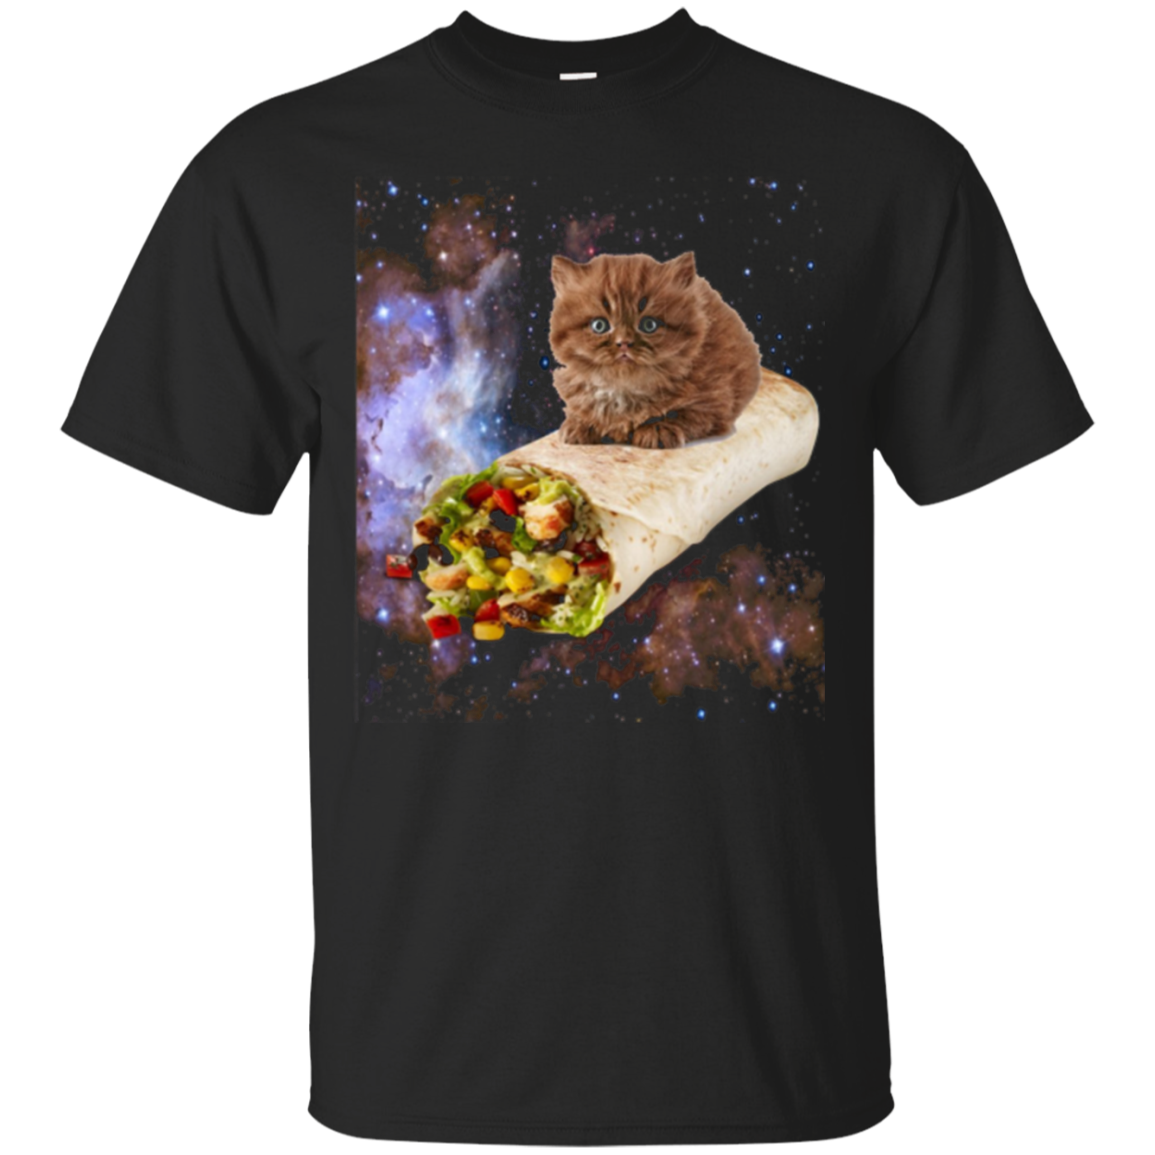 Cat on a Burrito in Space Kitty Kitteh Tee Shirt T Shirt